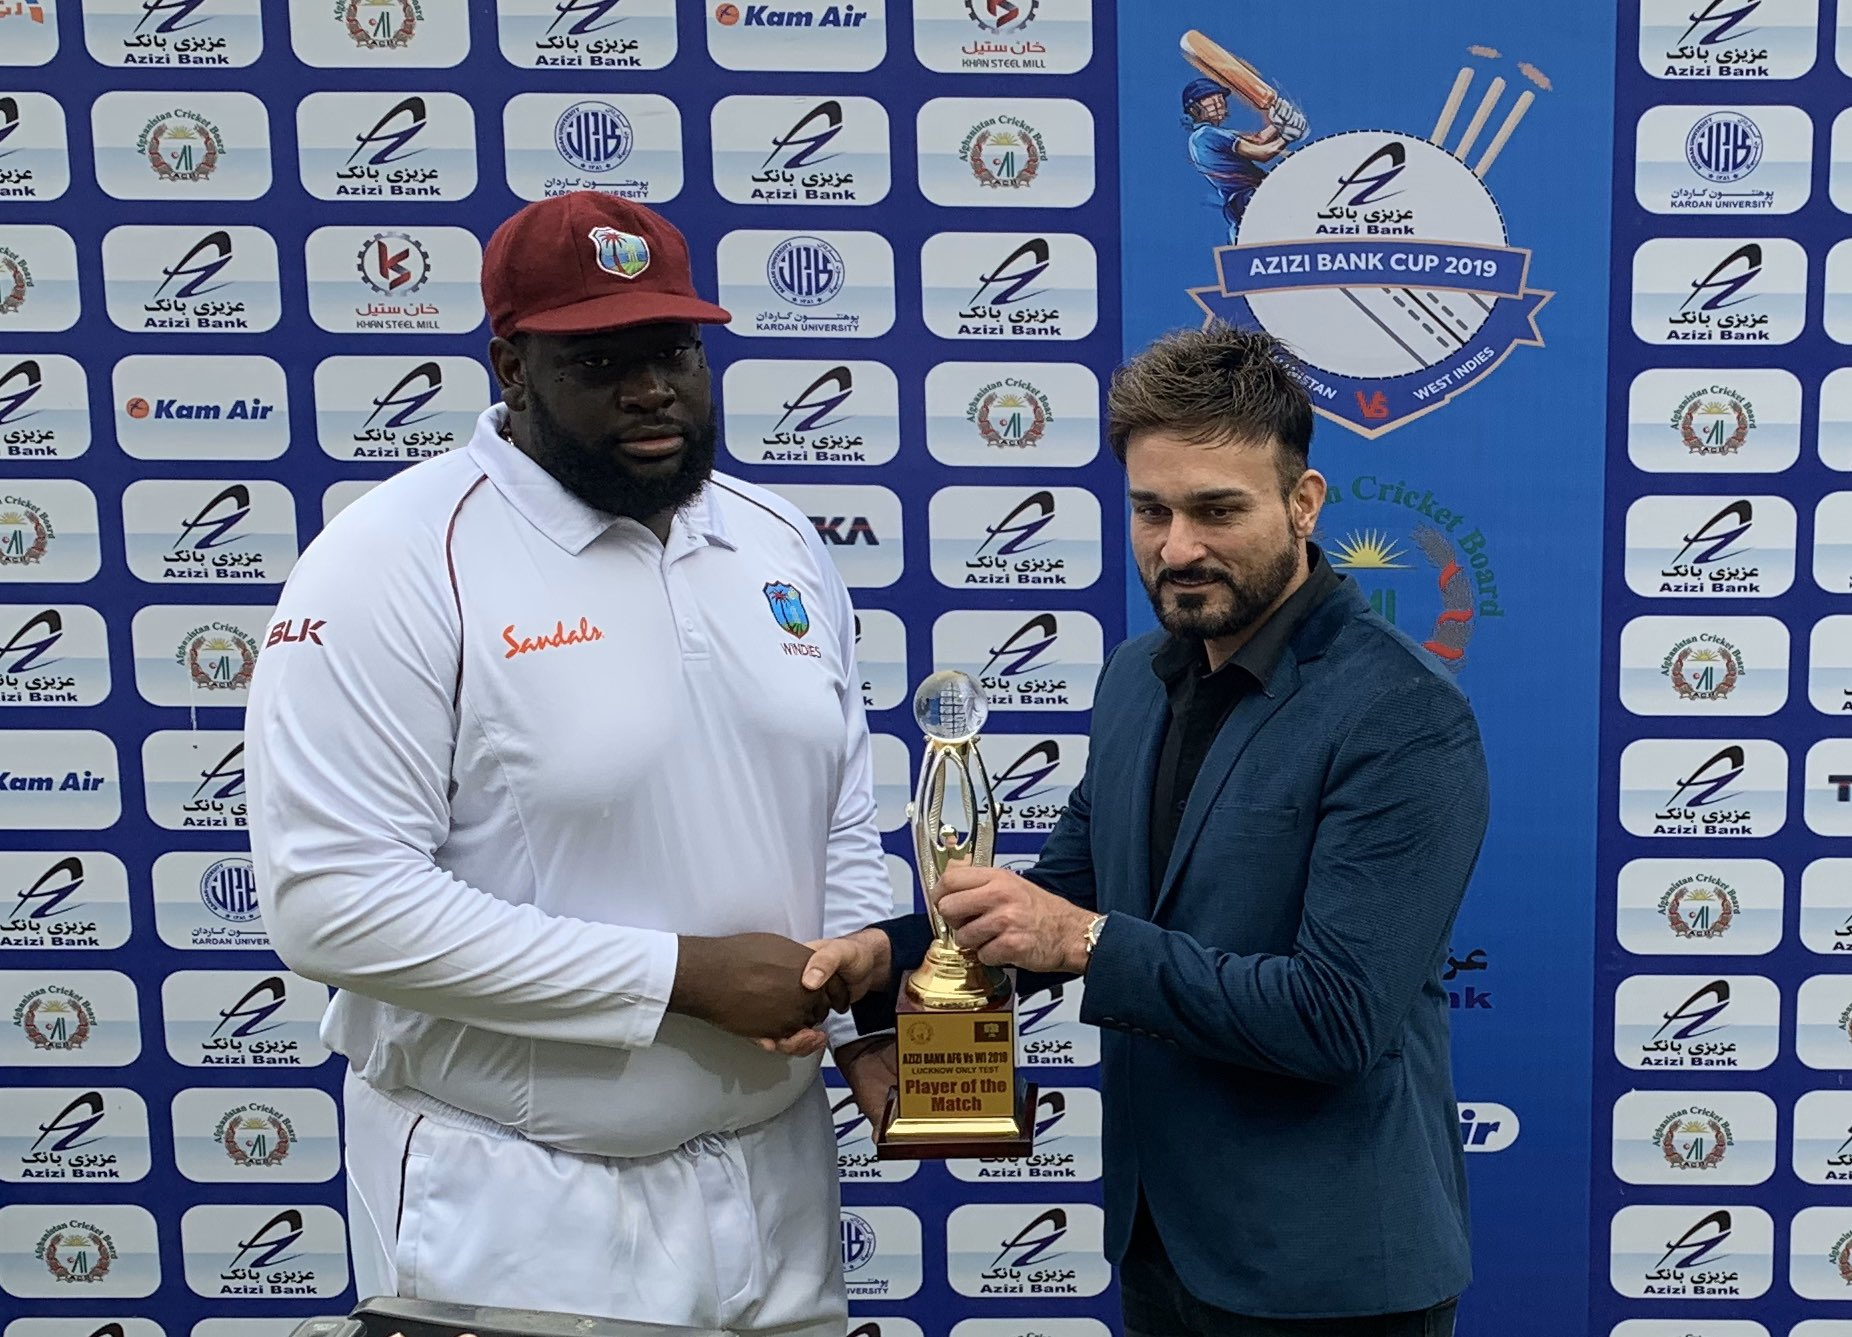 Rahkeem Cornwall receiving his Man of the Match trophy for picking 10 wickets in the match | Twitter